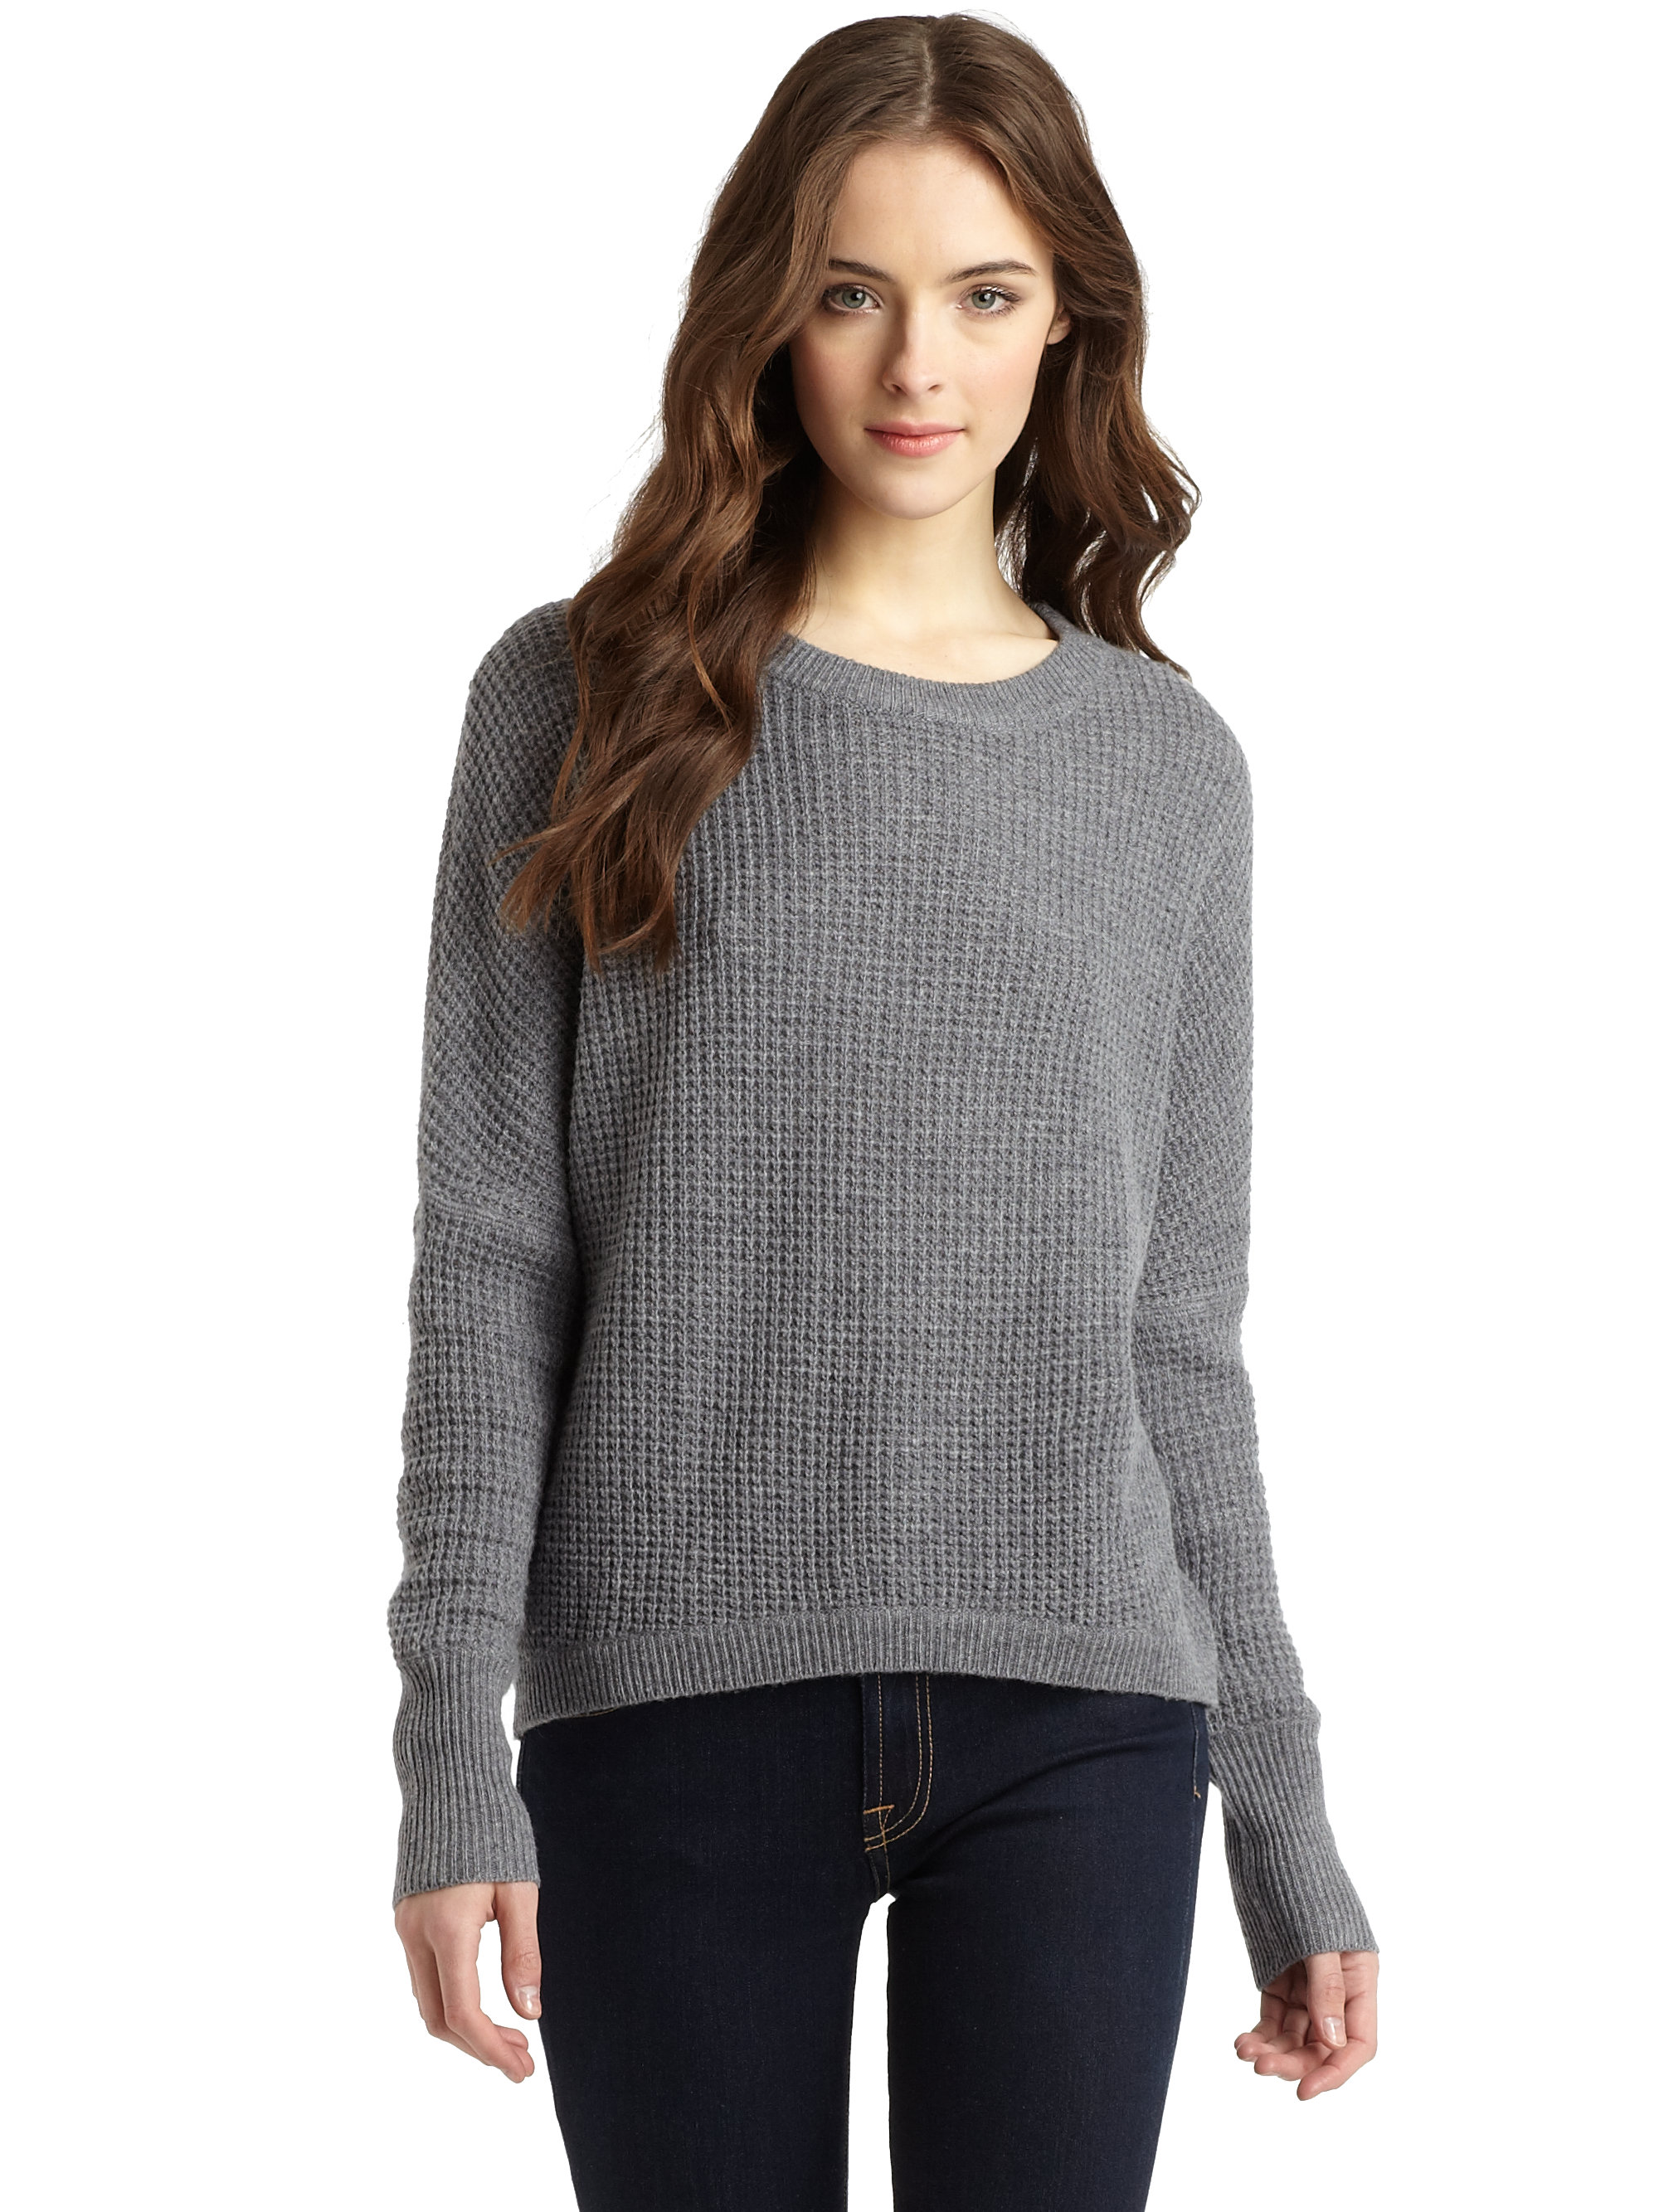 Bcbgmaxazria Camille Waffle Knit Sweater in Gray | Lyst